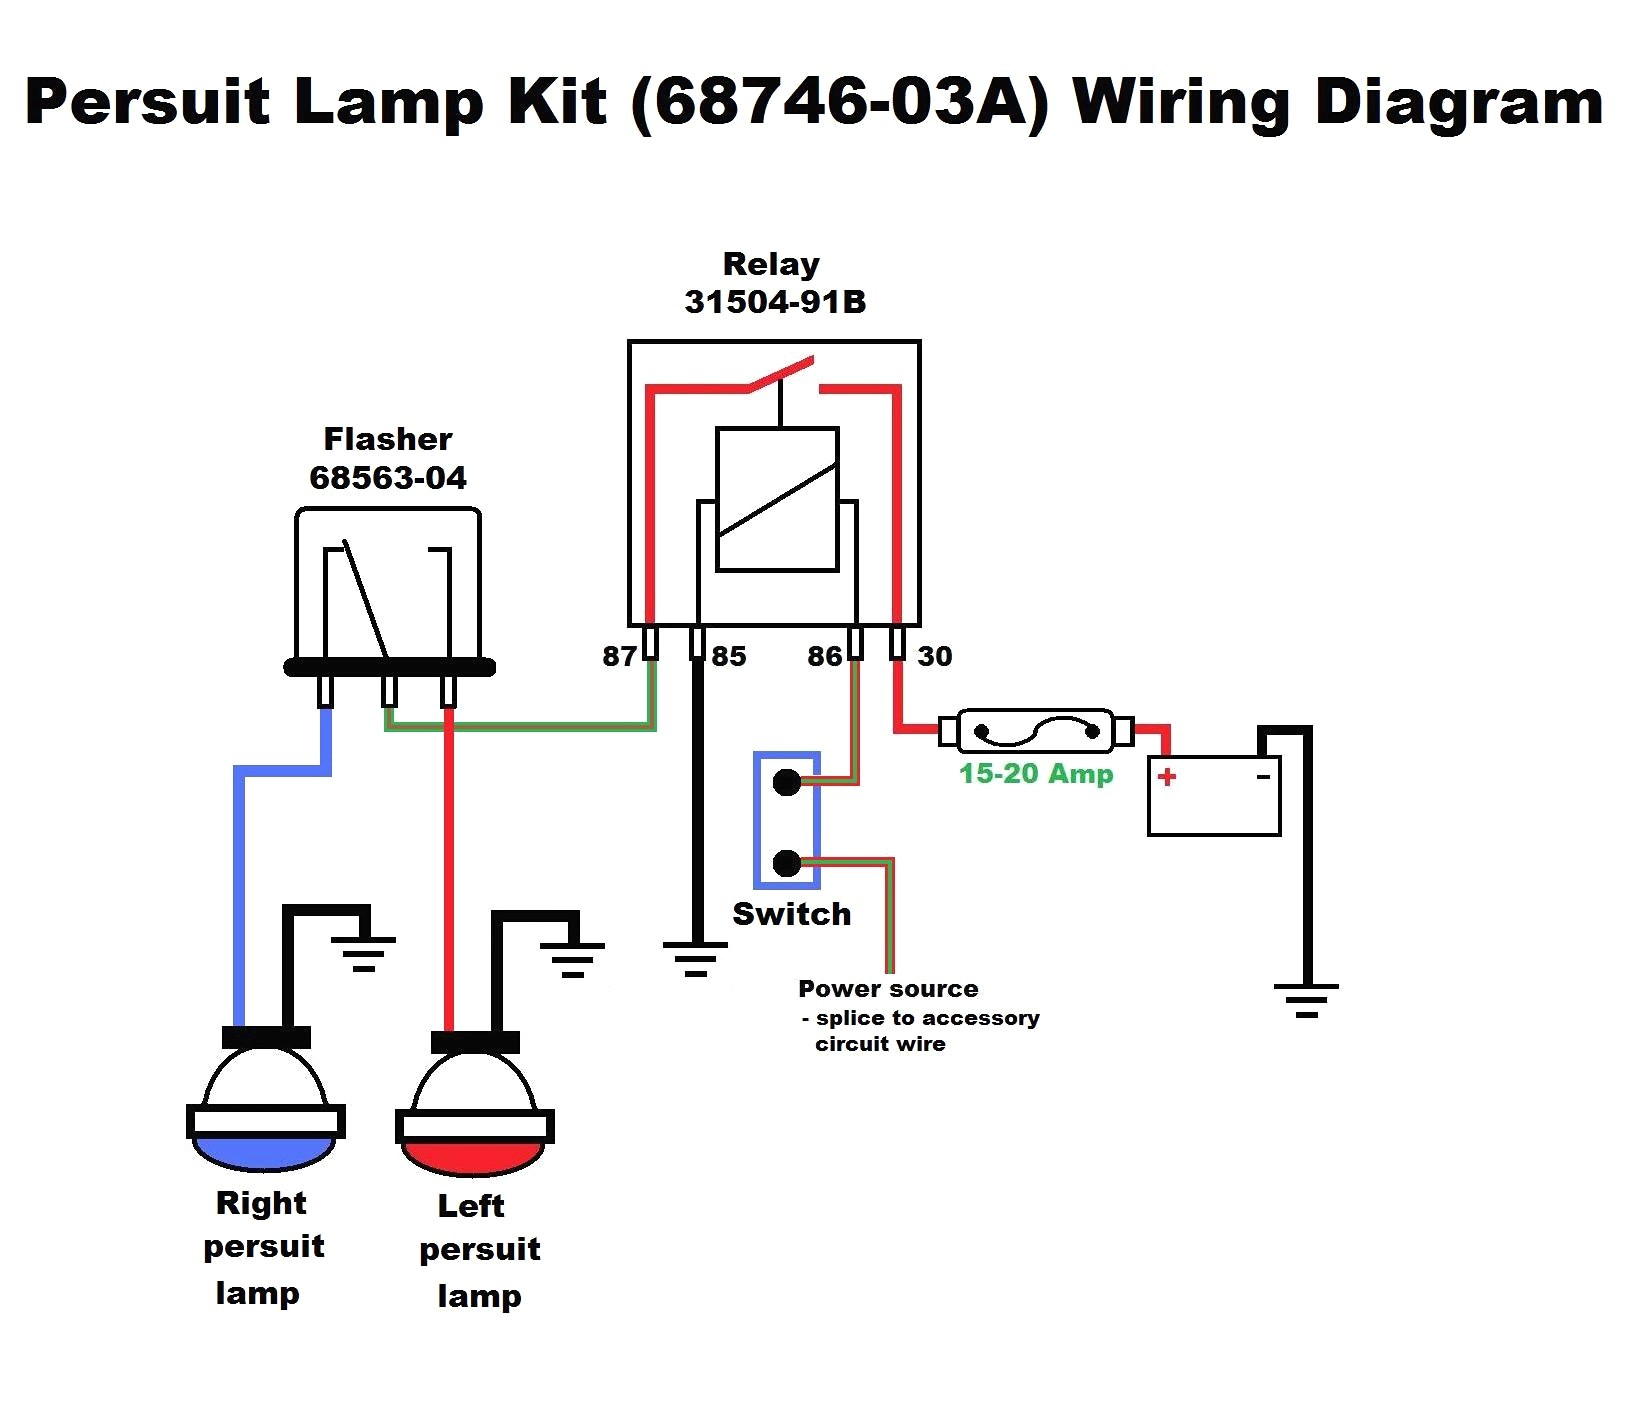 4 Wire Flasher Diagram - Wiring Diagrams Blogpalox-france.fr